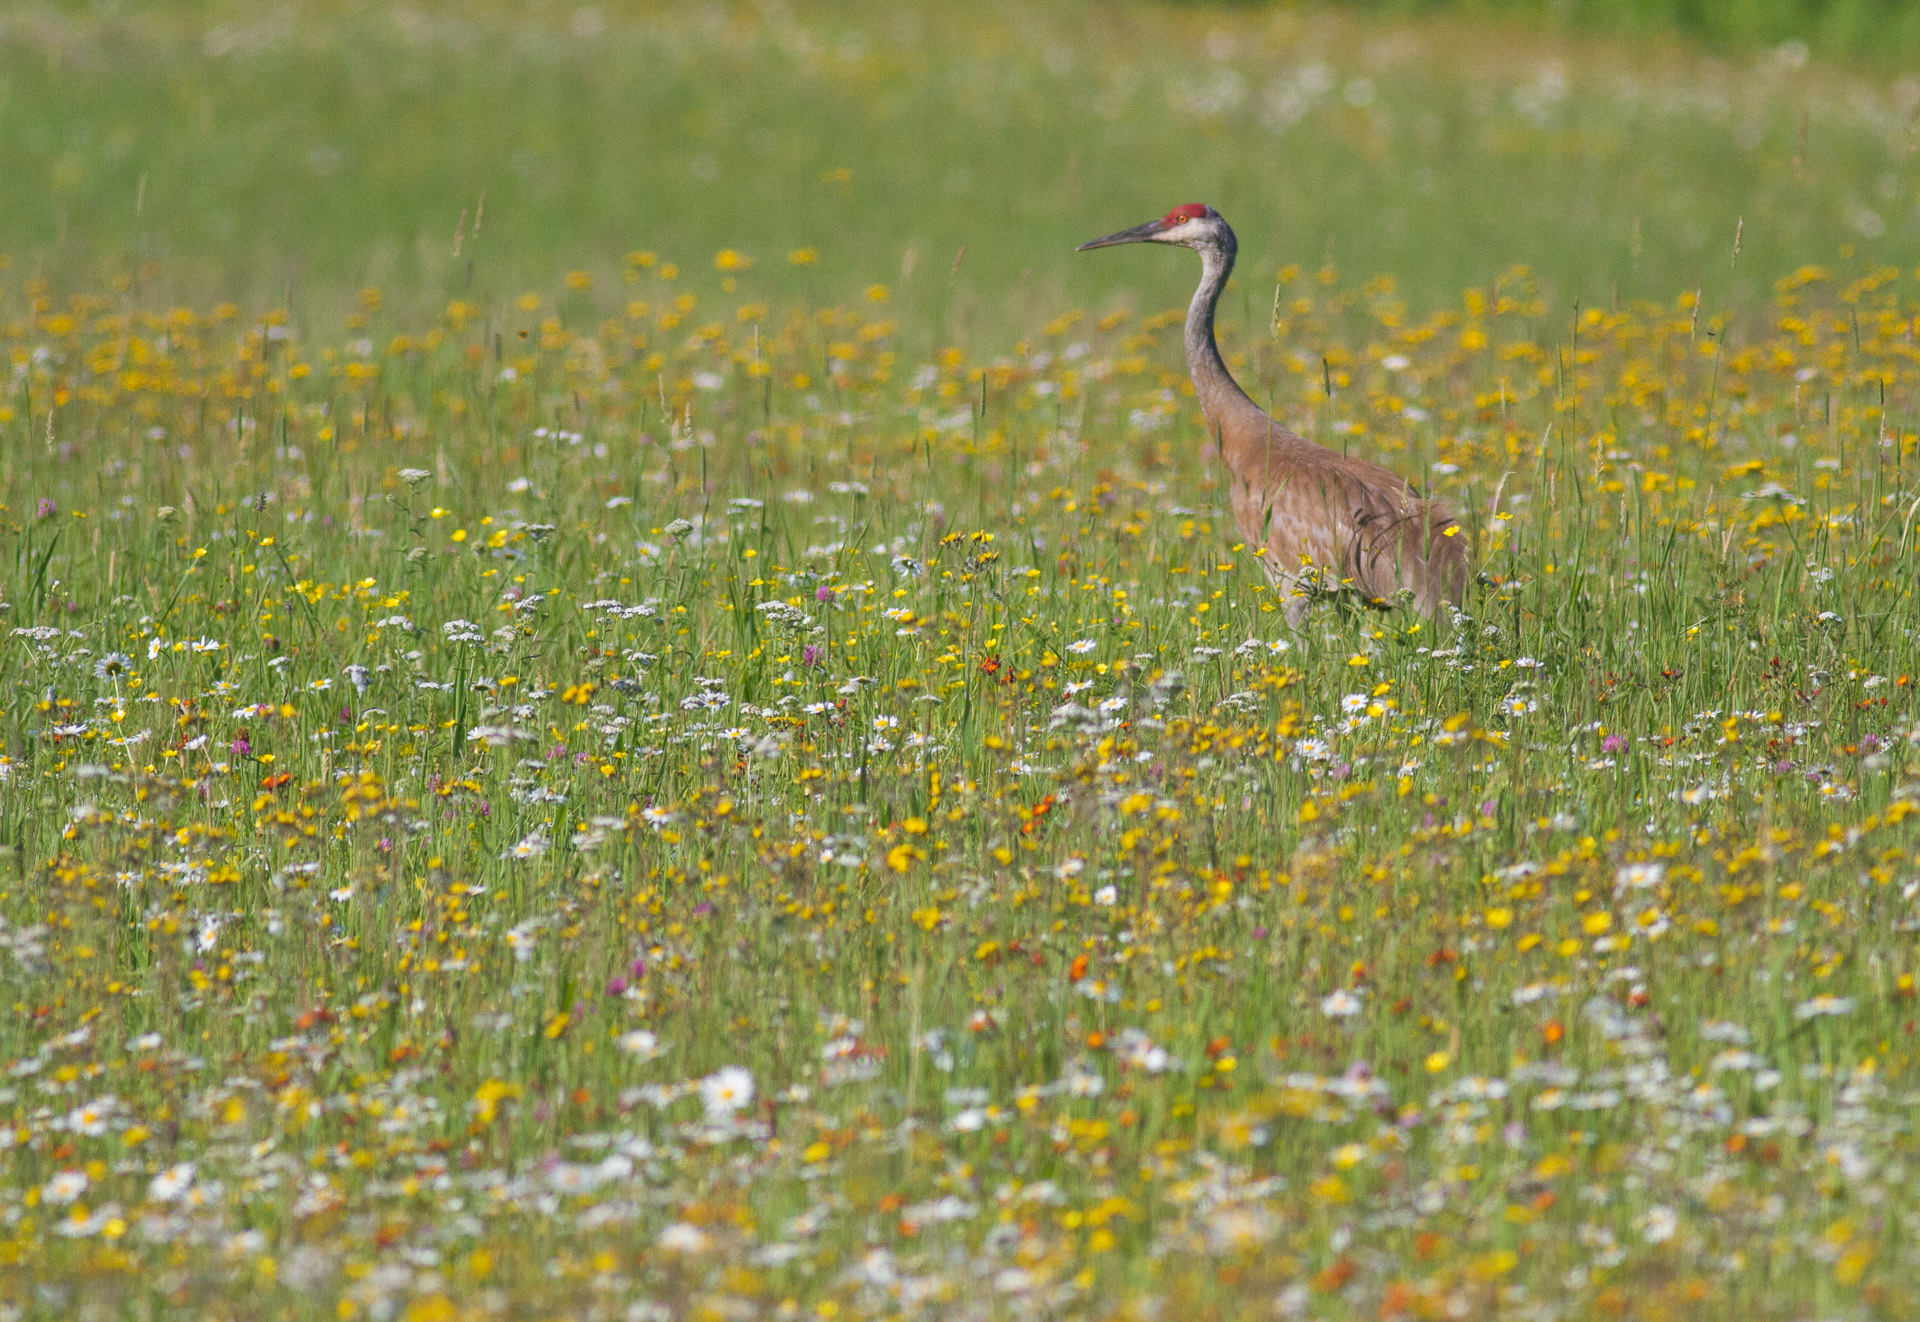 Sandhill Crane with colt in flowers Pine County MNIMG_1063